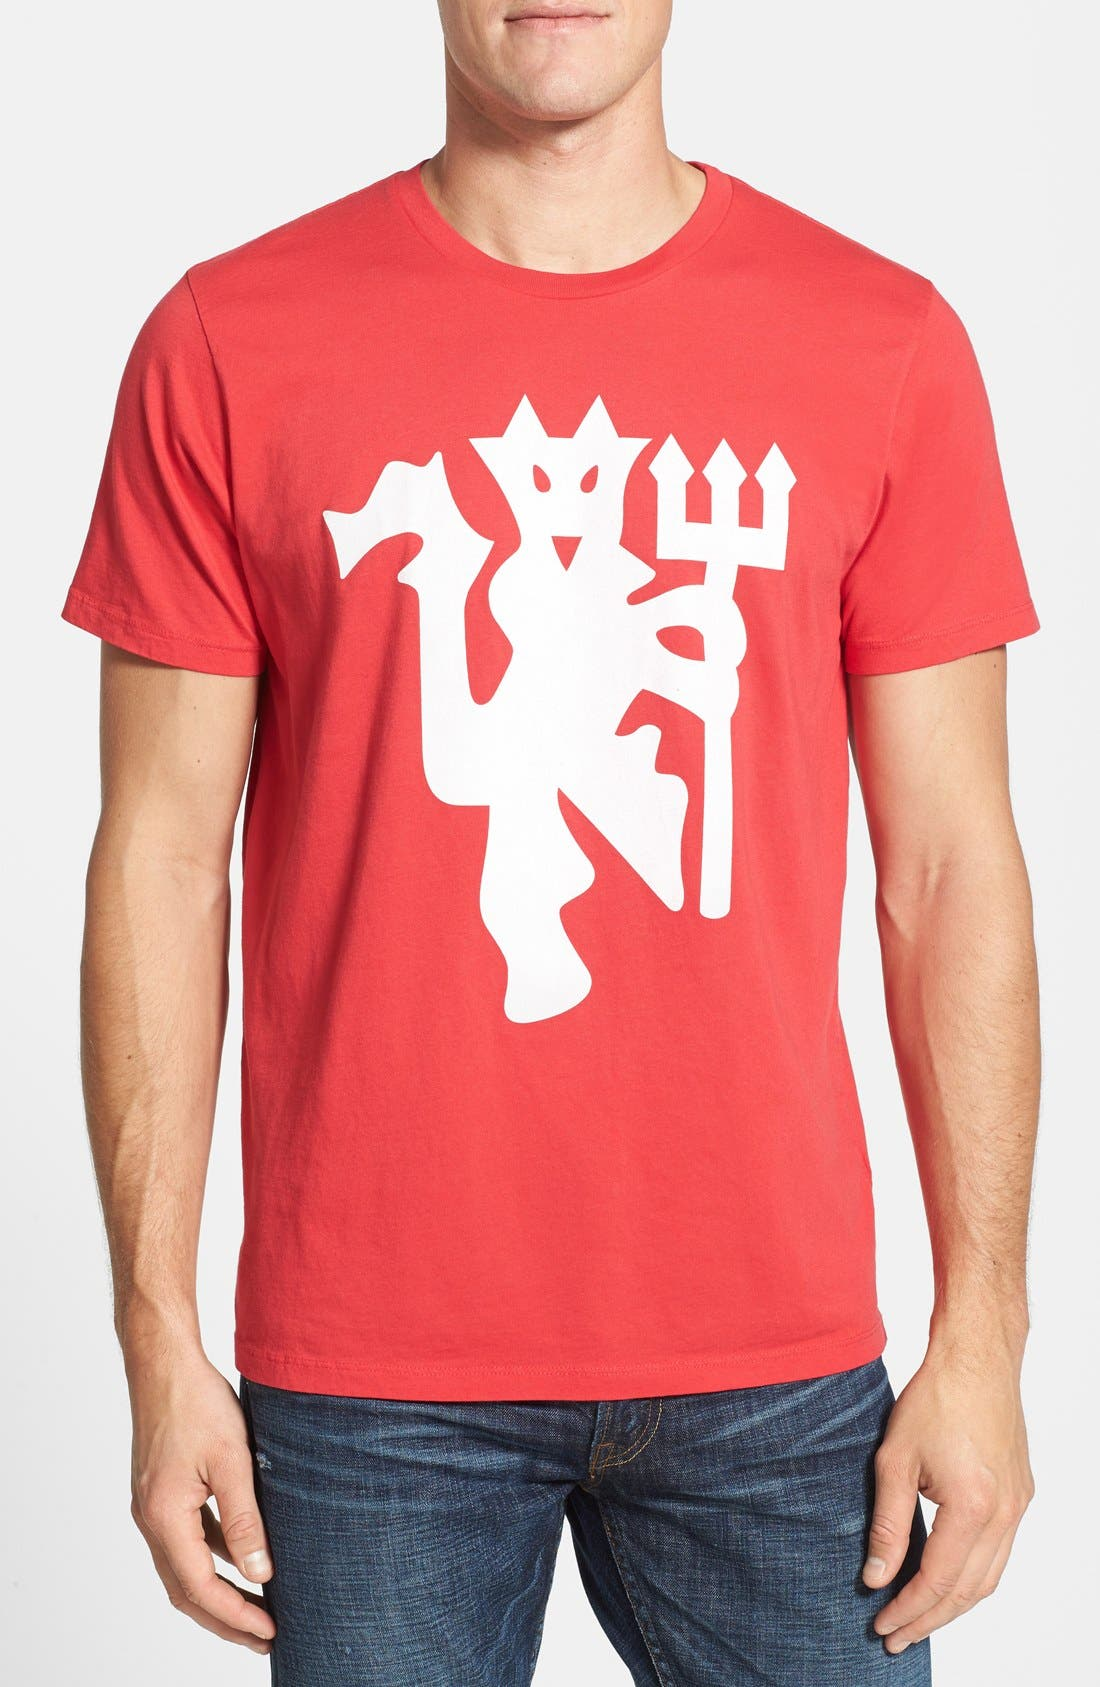 'Manchester United FC' Graphic T-Shirt,                             Main thumbnail 1, color,                             621